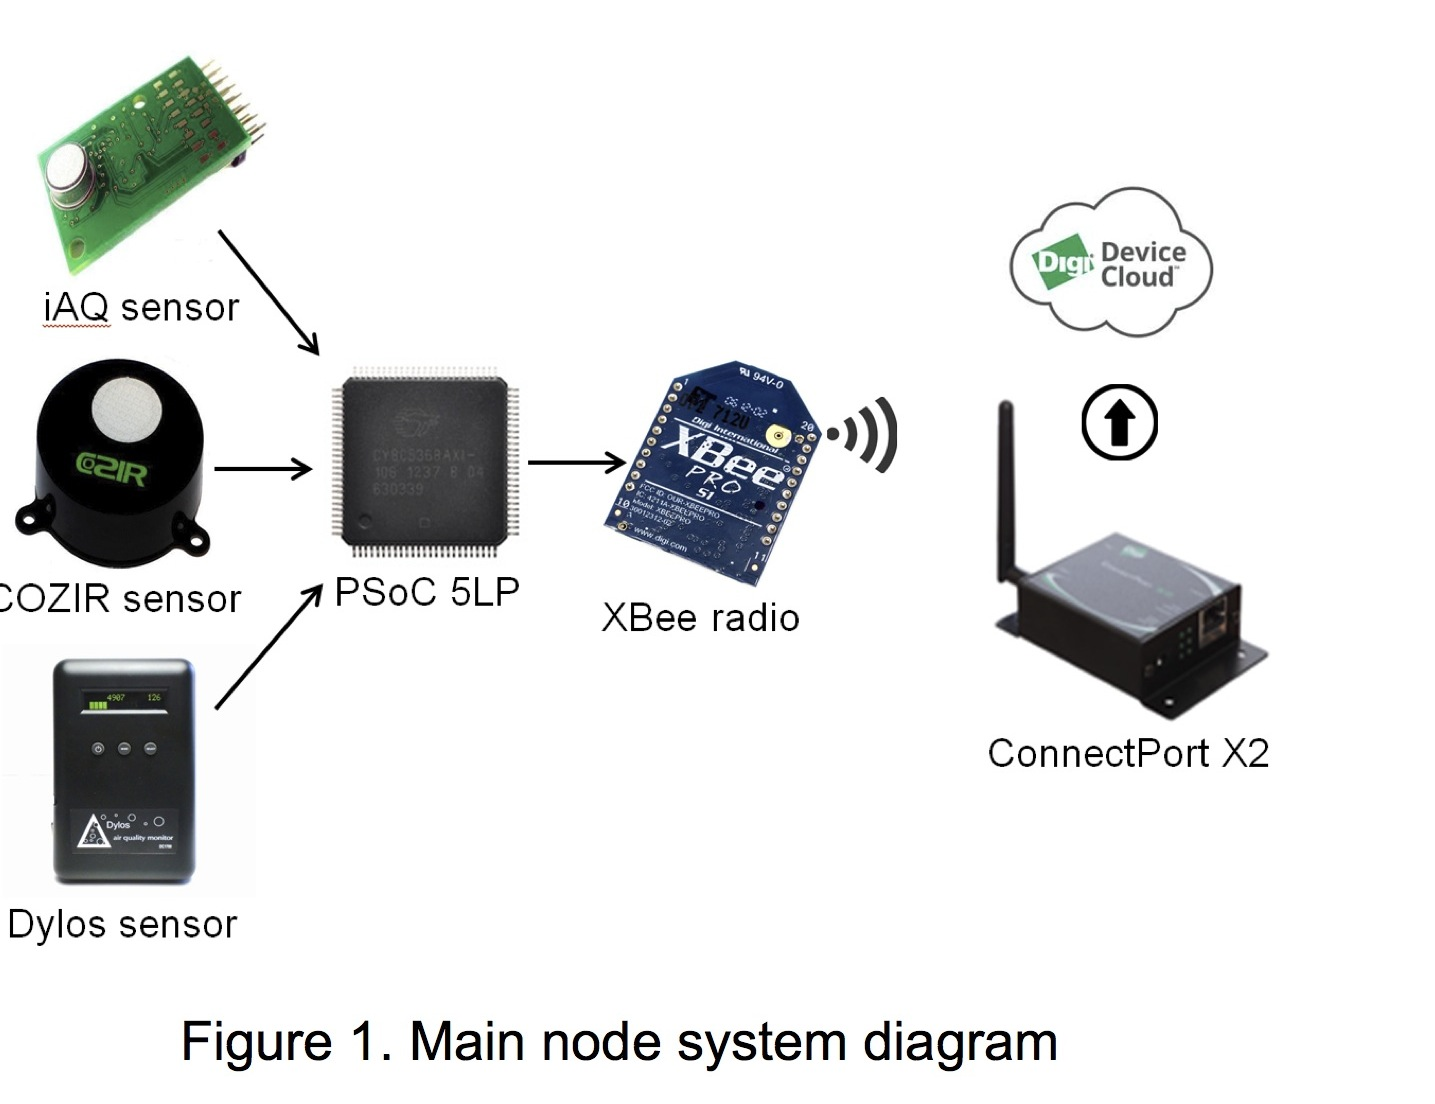 Main node system diagram